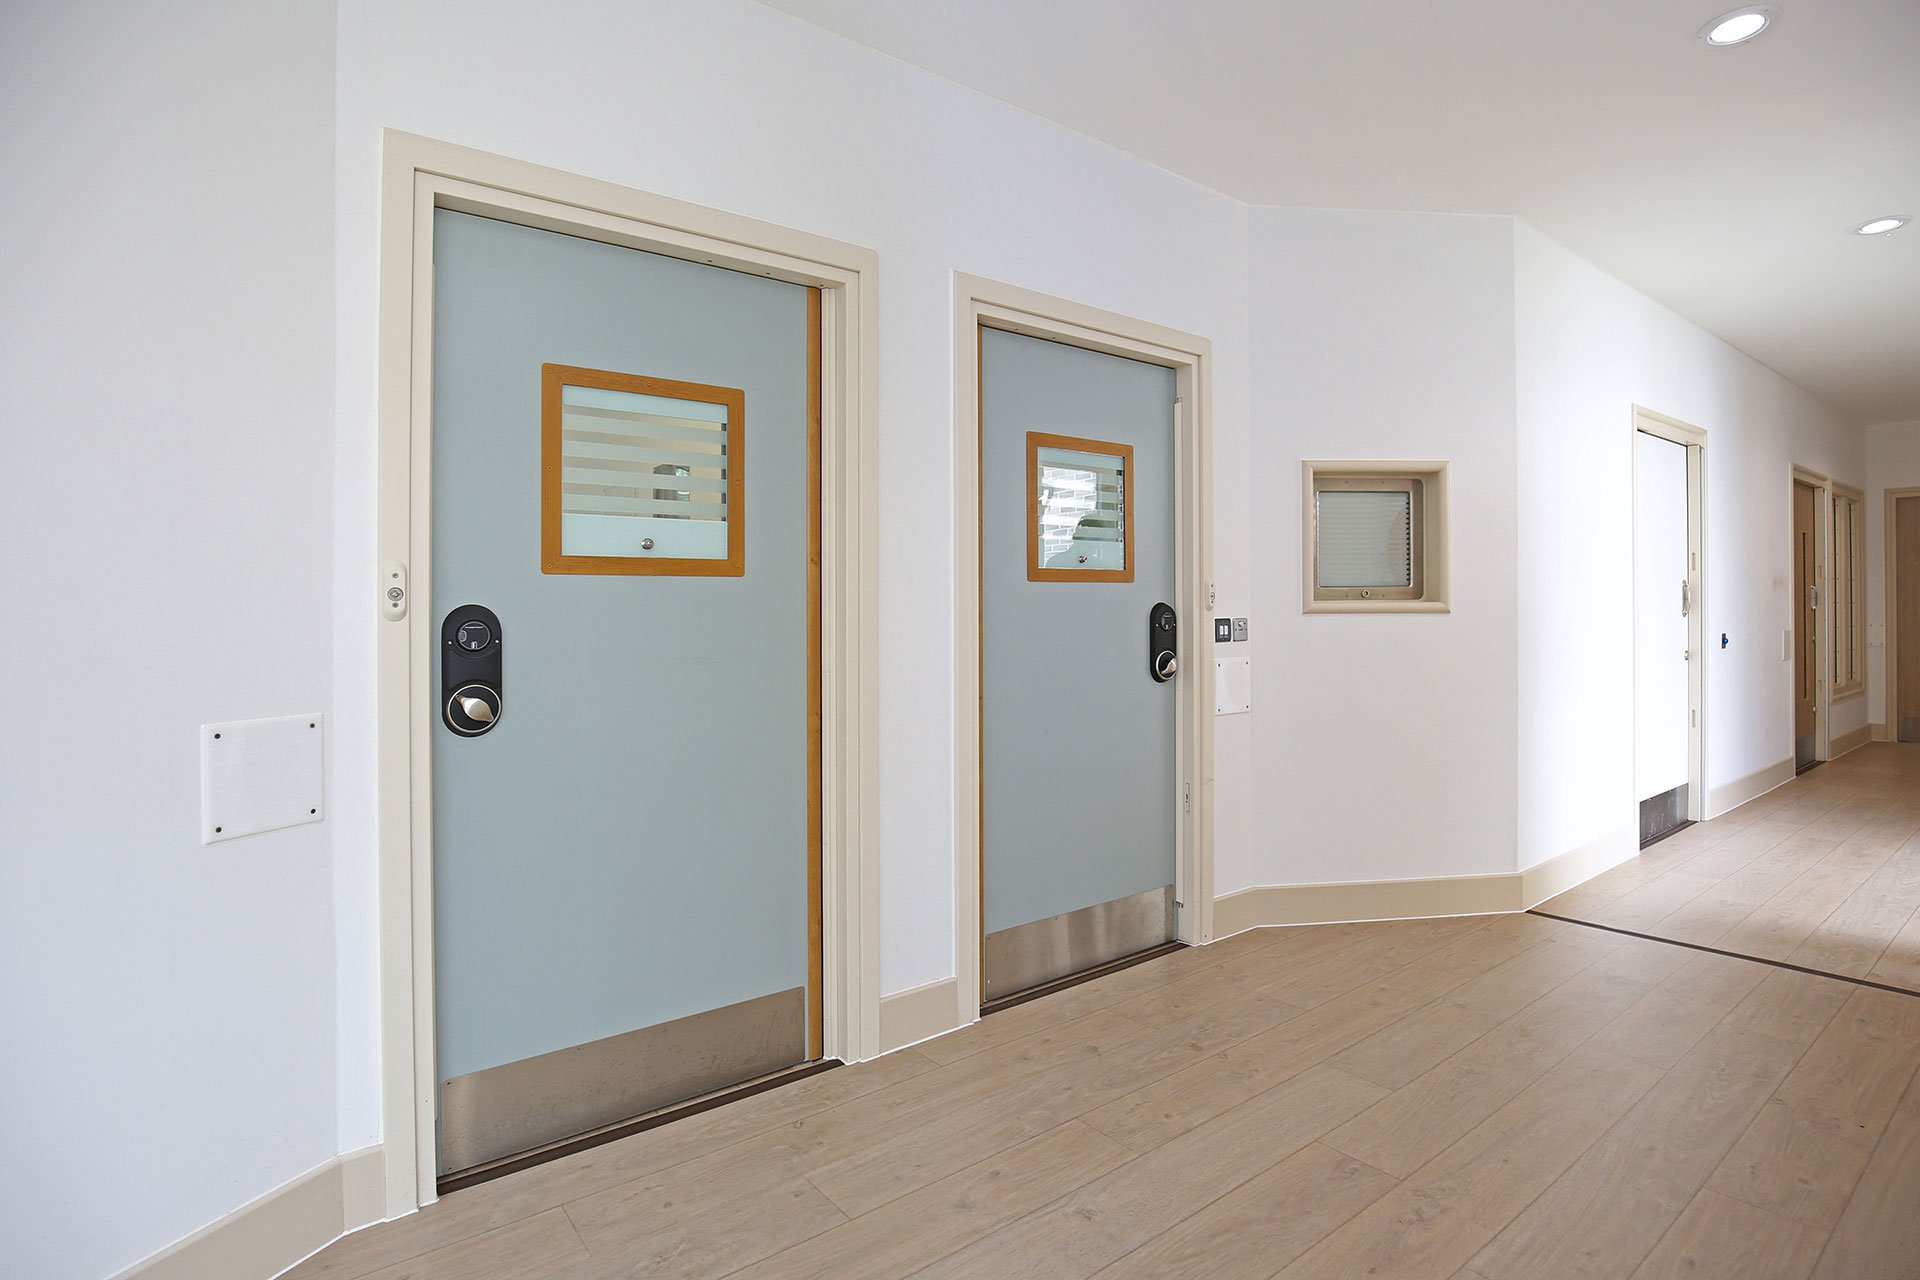 Bedroom doors with door alarm and electronic locking